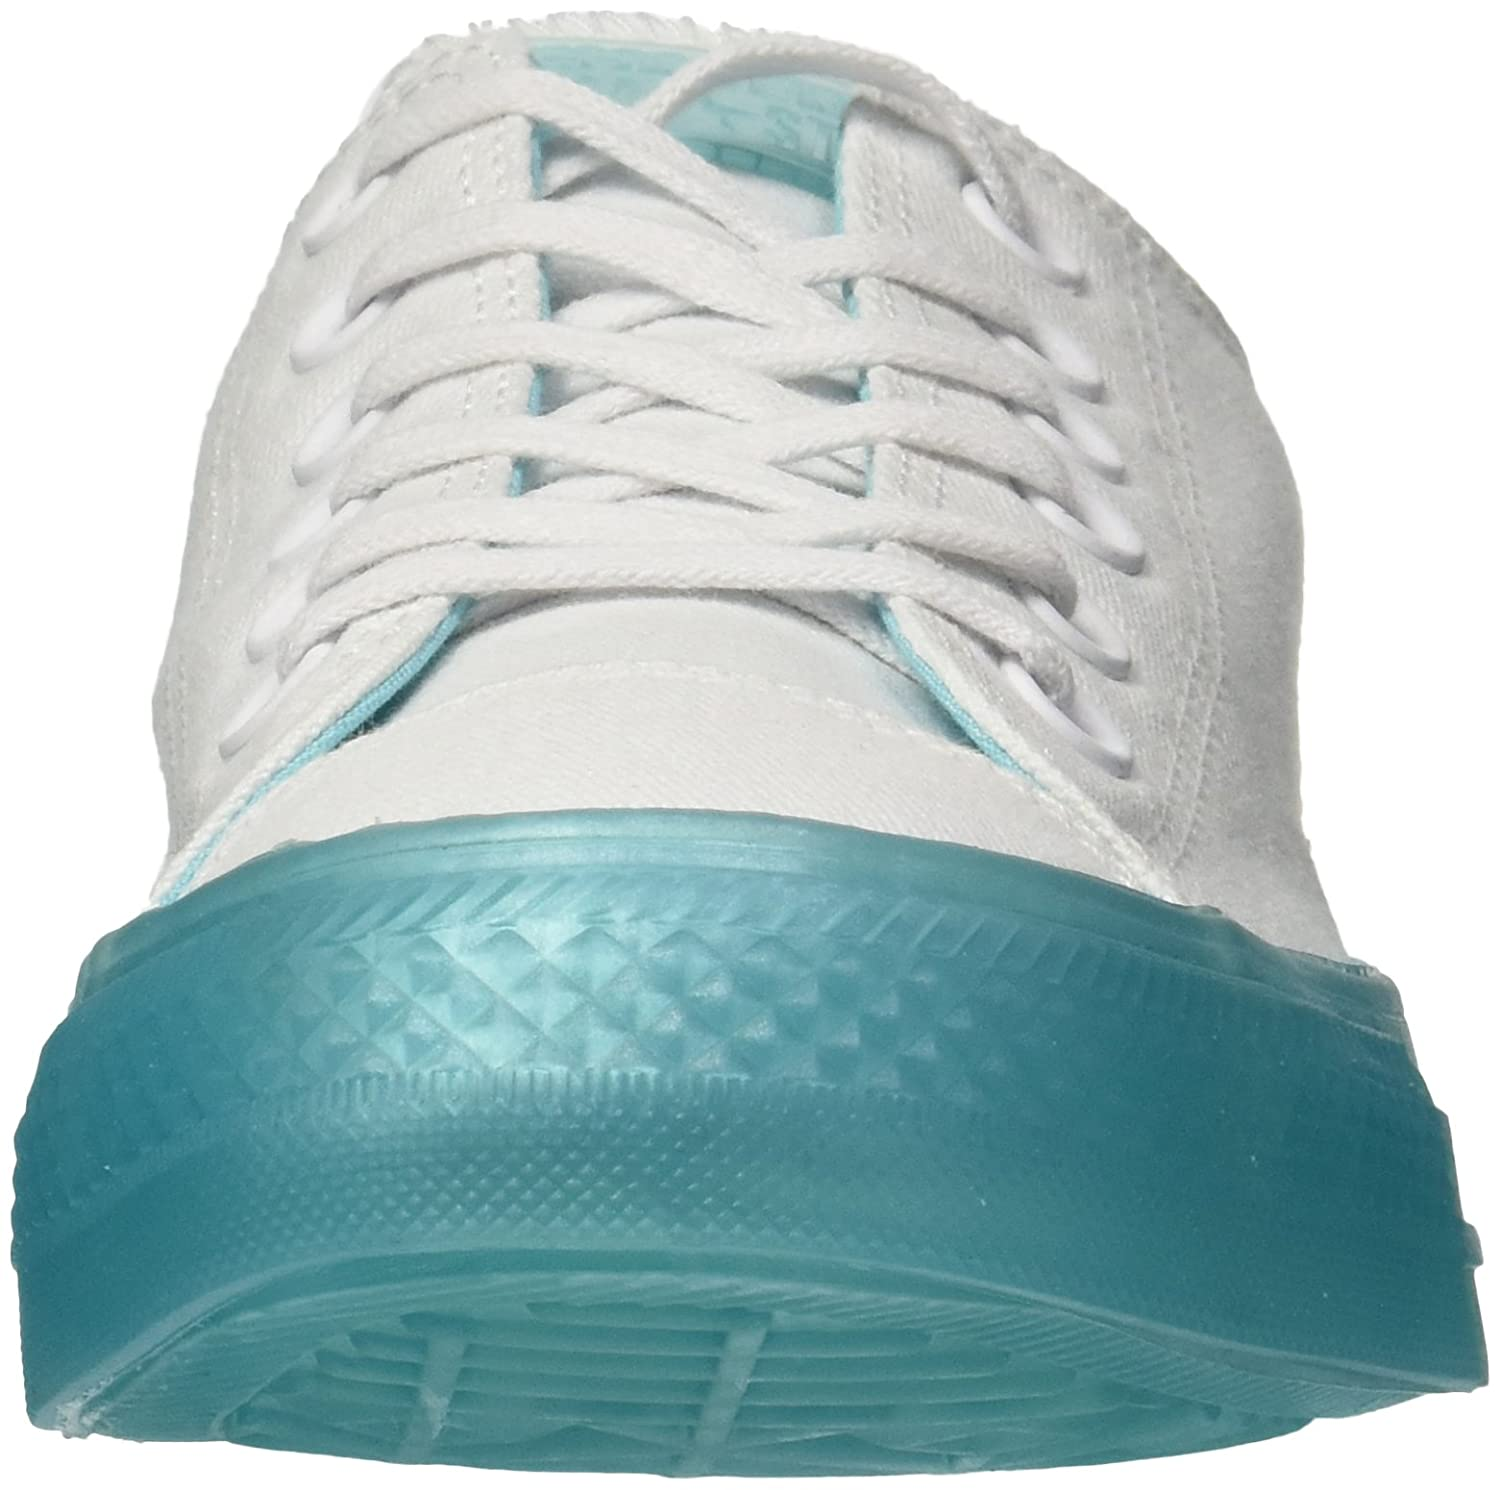 Converse Chucks High CT As Aqua OX 560645C Weiß Bleached Aqua As - 14517a